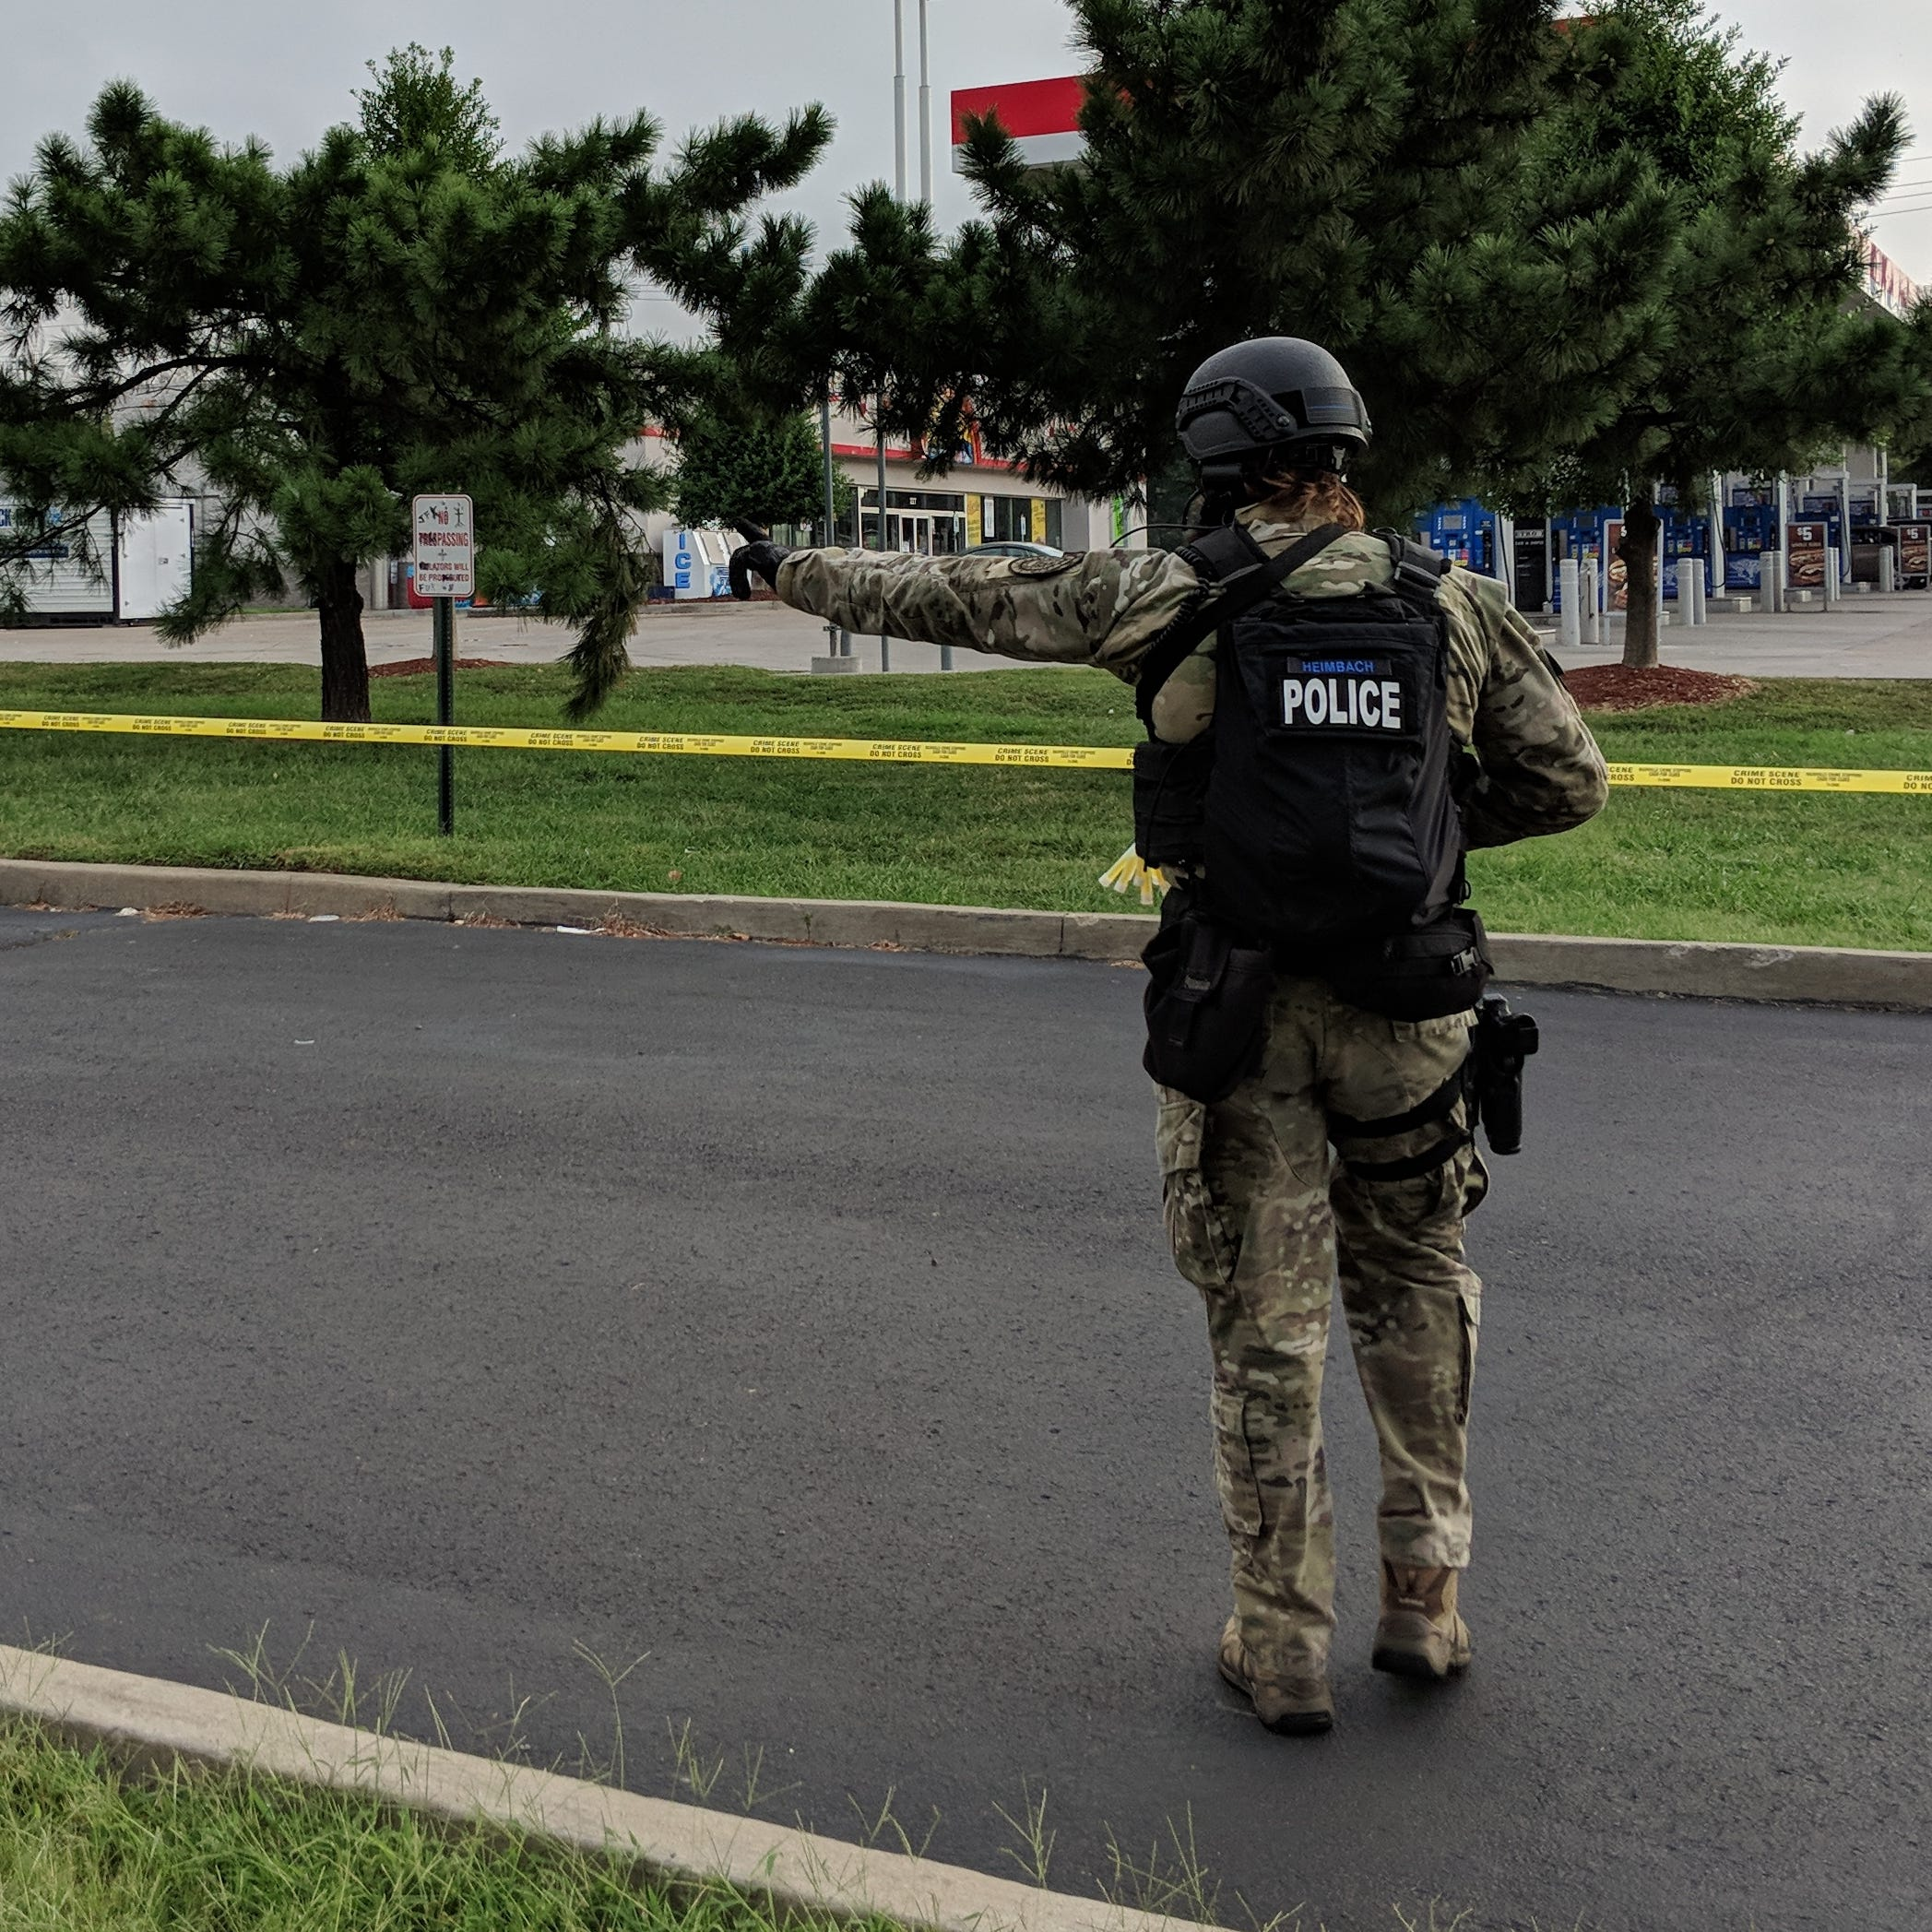 Metro Police: Suspects surrender after three-hour barricade situation outside Nissan Stadium